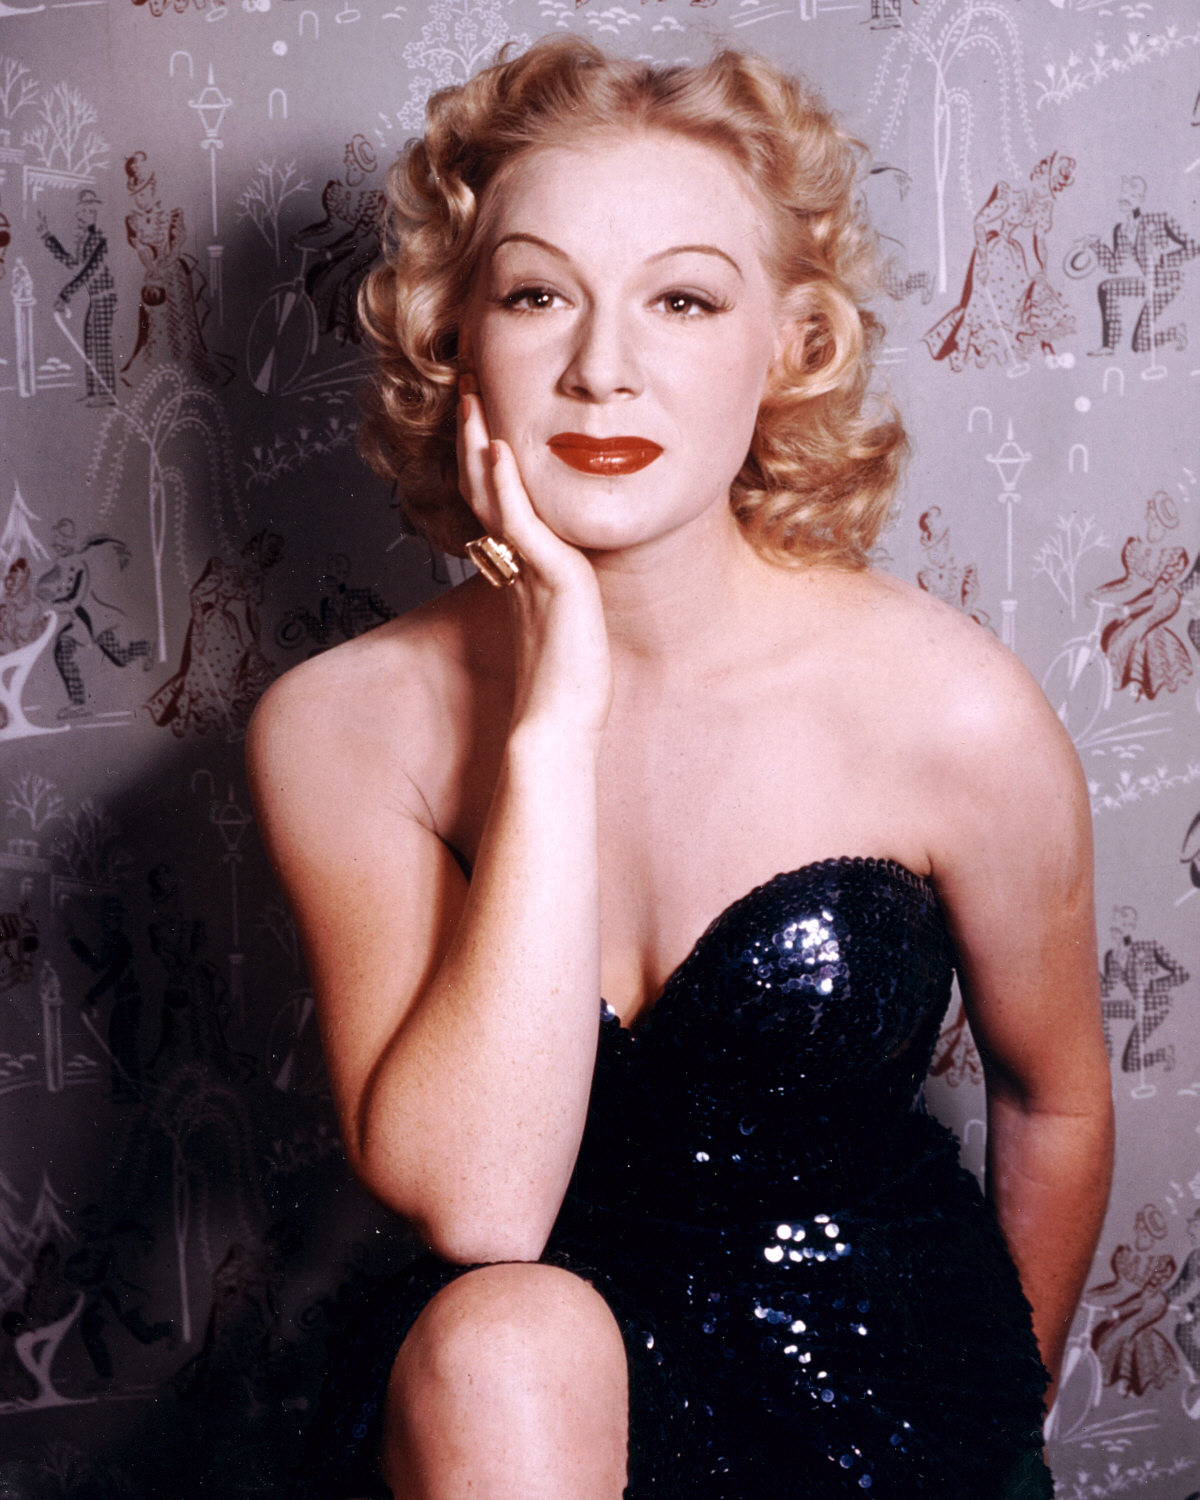 betty hutton cause of deathbetty hutton it's a man, betty hutton it's a man перевод, betty hutton it's oh so quiet, betty hutton he's a demon, betty hutton blow a fuse, betty hutton it had to be you, betty hutton and howard keel, betty hutton cause of death, betty hutton he's a demon перевод, betty hutton old man mose, betty hutton it's a man lyrics, betty hutton hit the road to dreamland, betty hutton bjork, betty hutton he's a demon lyrics, betty hutton, betty hutton songs, betty hutton orange colored sky, betty hutton it's oh so quiet lyrics, betty hutton greatest show on earth, betty hutton arthur murray